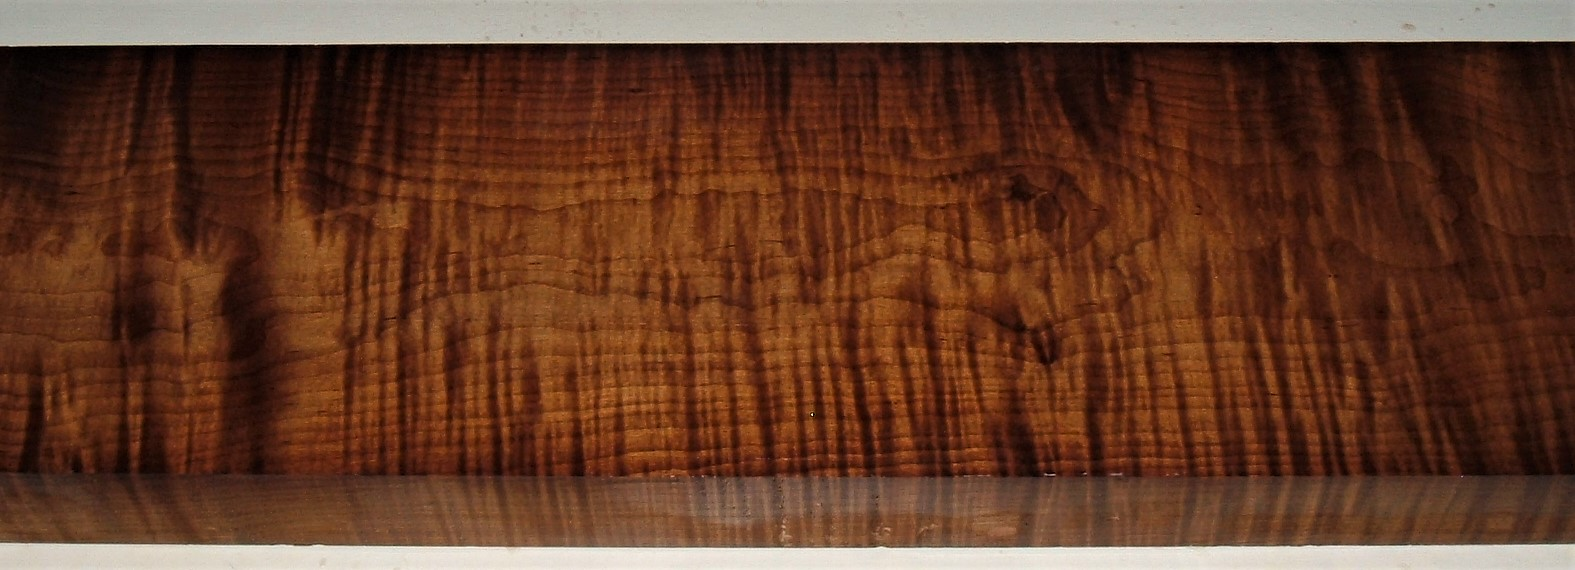 RM2007-202JJ, 2-11/16x5-1/8x53, Roasted Curly Maple